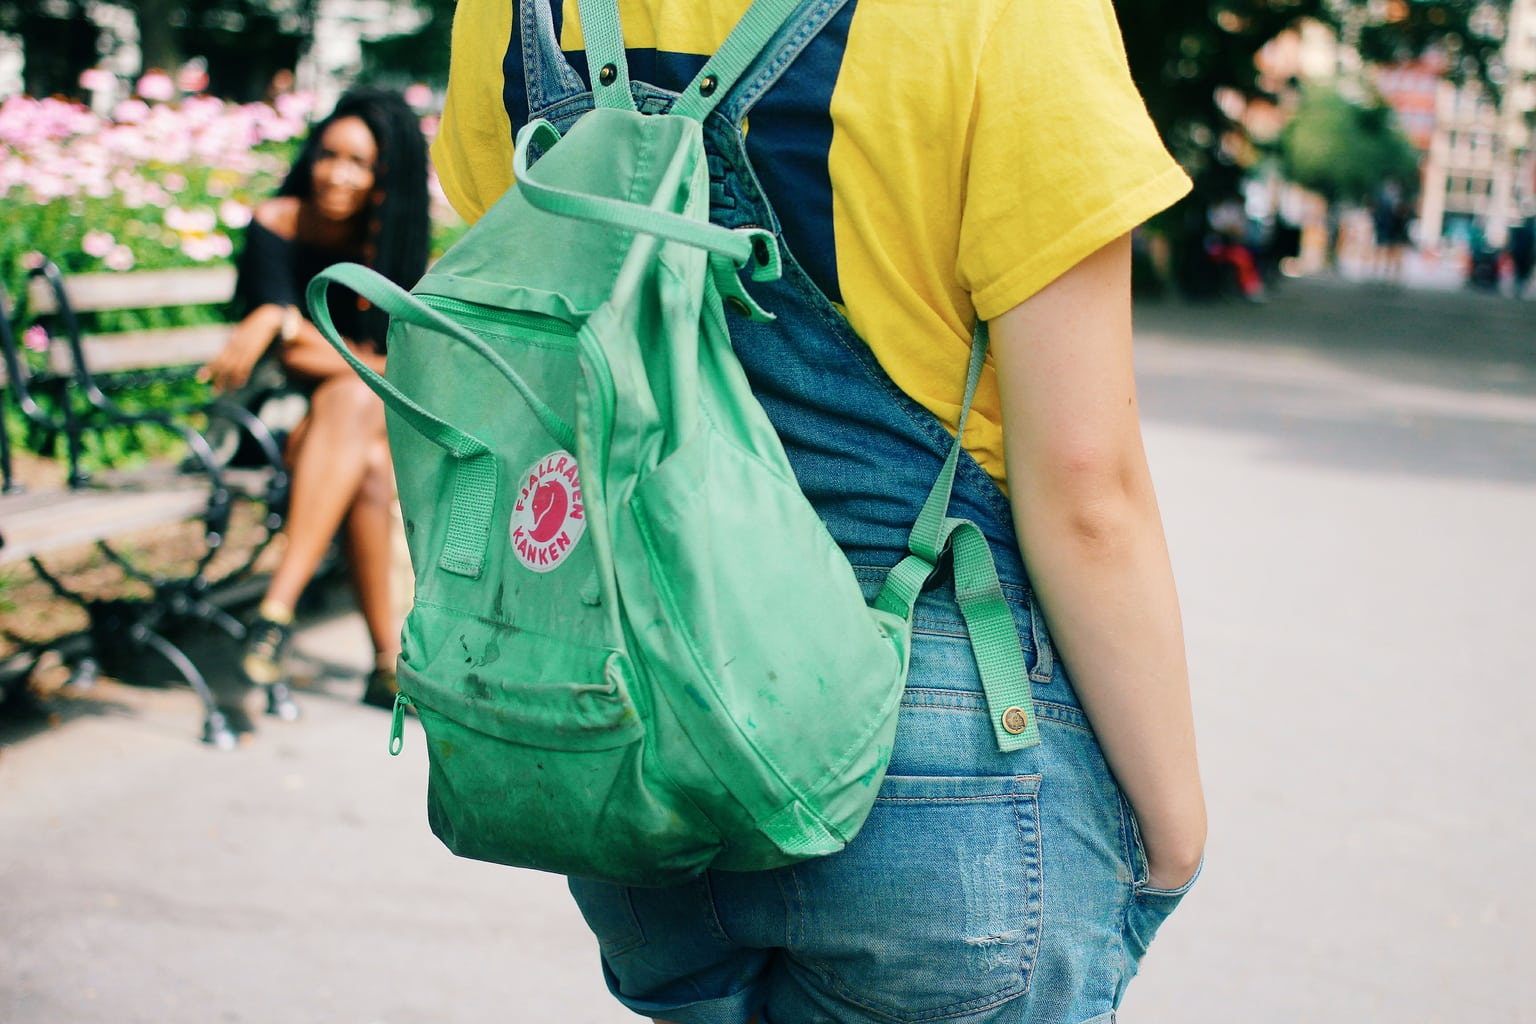 Fashion at School of Visual Arts, NYC - student Kaylee wears a trendy Fjallraven backpack in green